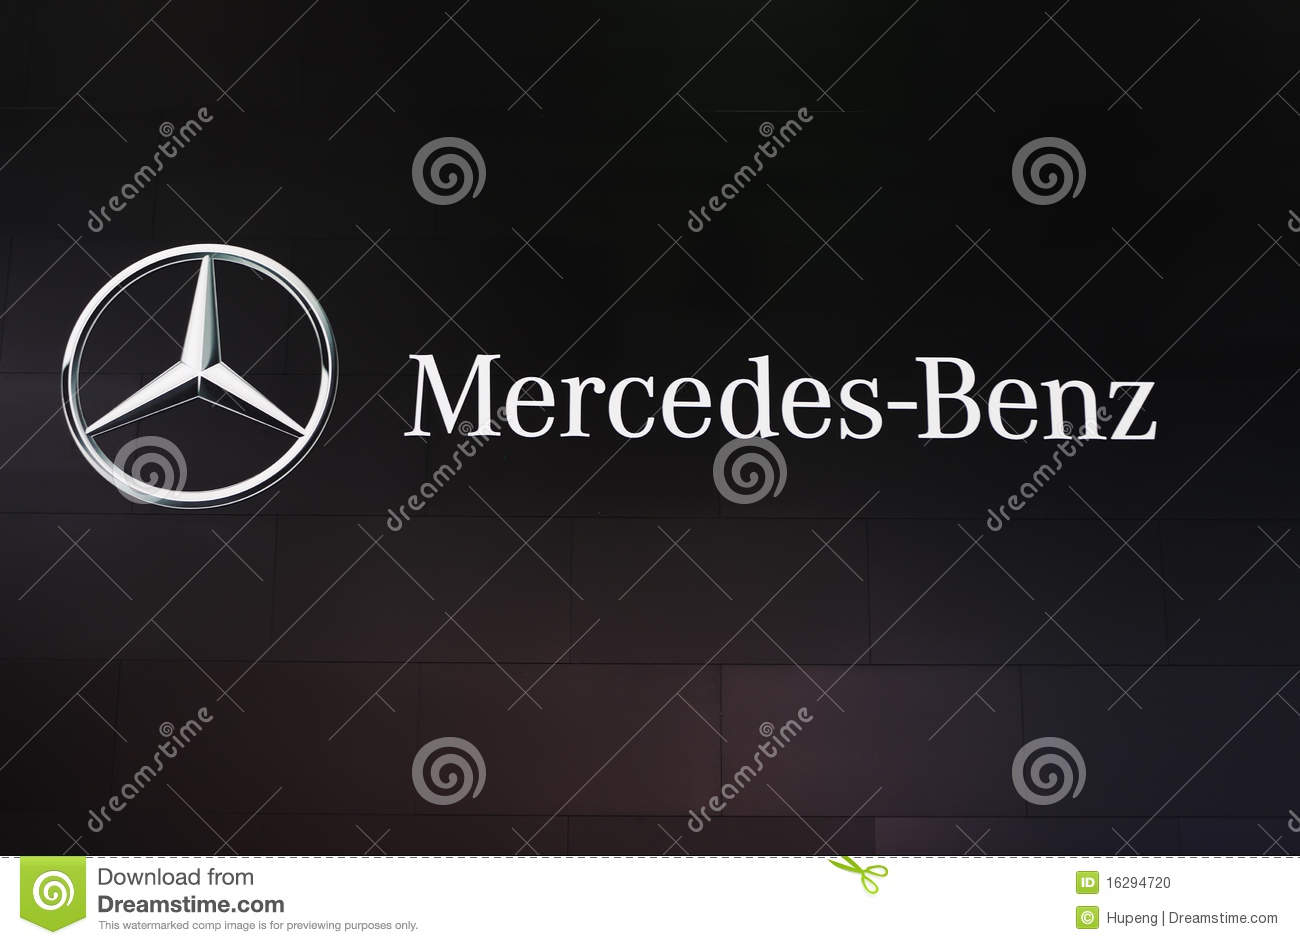 Ferrari F1 Wallpaper in addition Stock Photo Mercedes Benz Logo Image16294720 likewise Bild Runterladen Vfb Stuttgart 703 as well Amg Logo Wallpaper as well Stern 1600 1200. on mercedes benz logo wallpaper